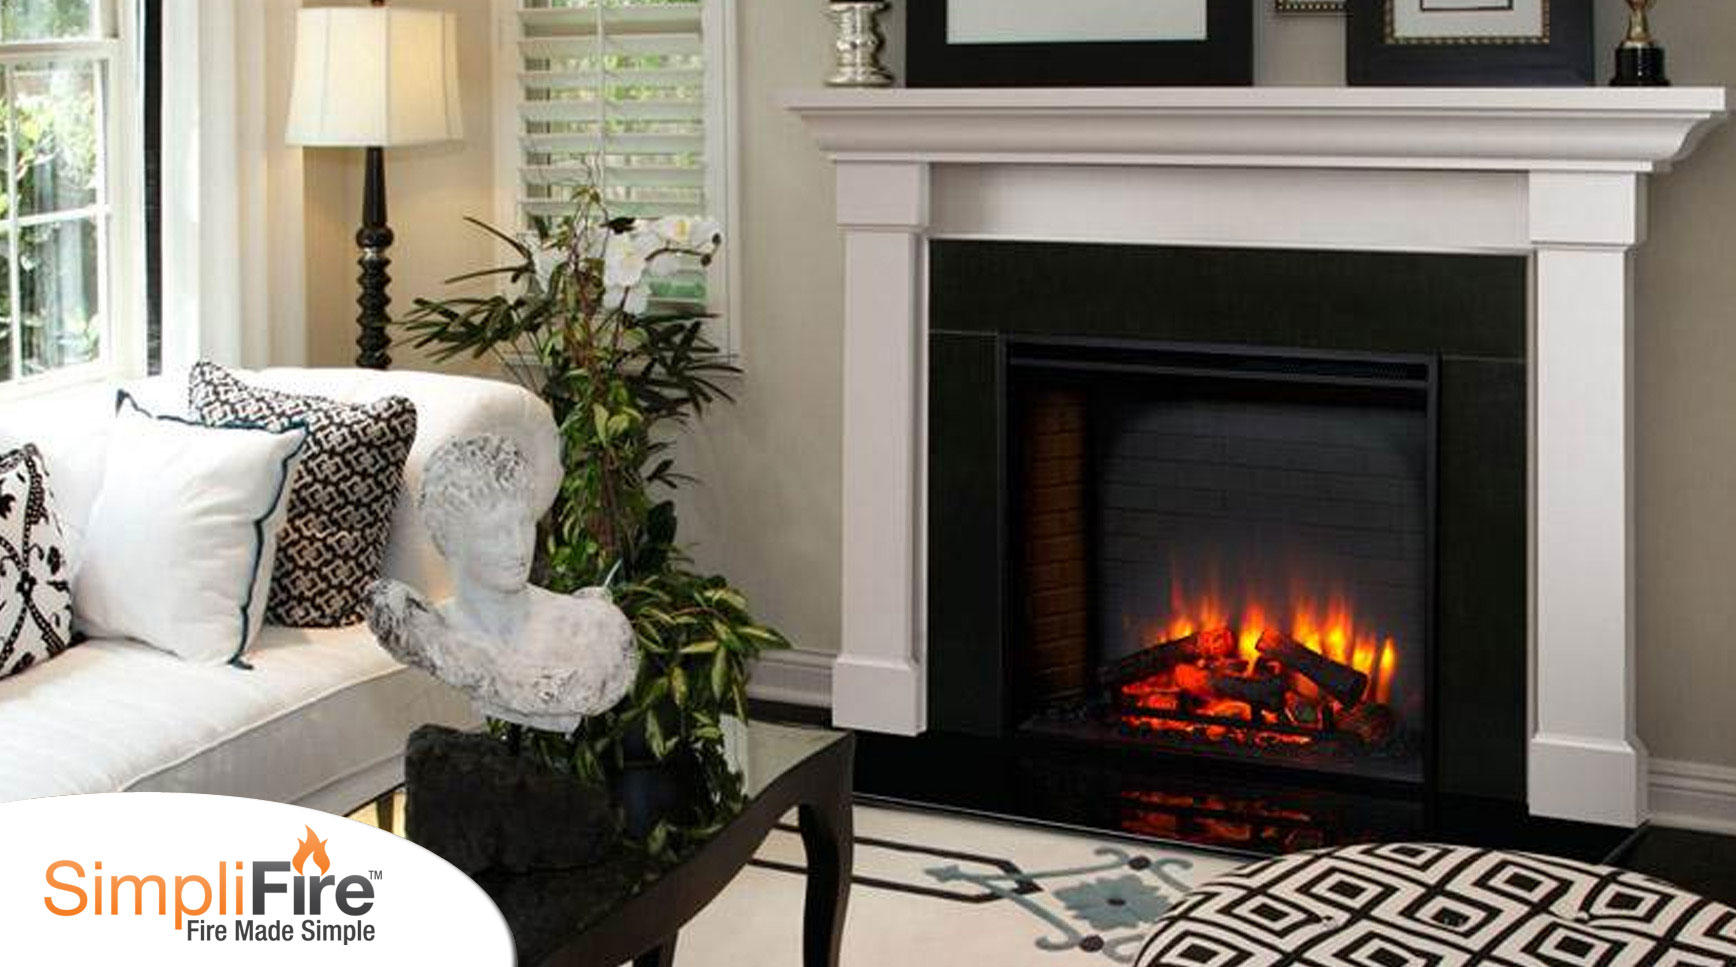 SimpliFire Built In Electric Fireplace